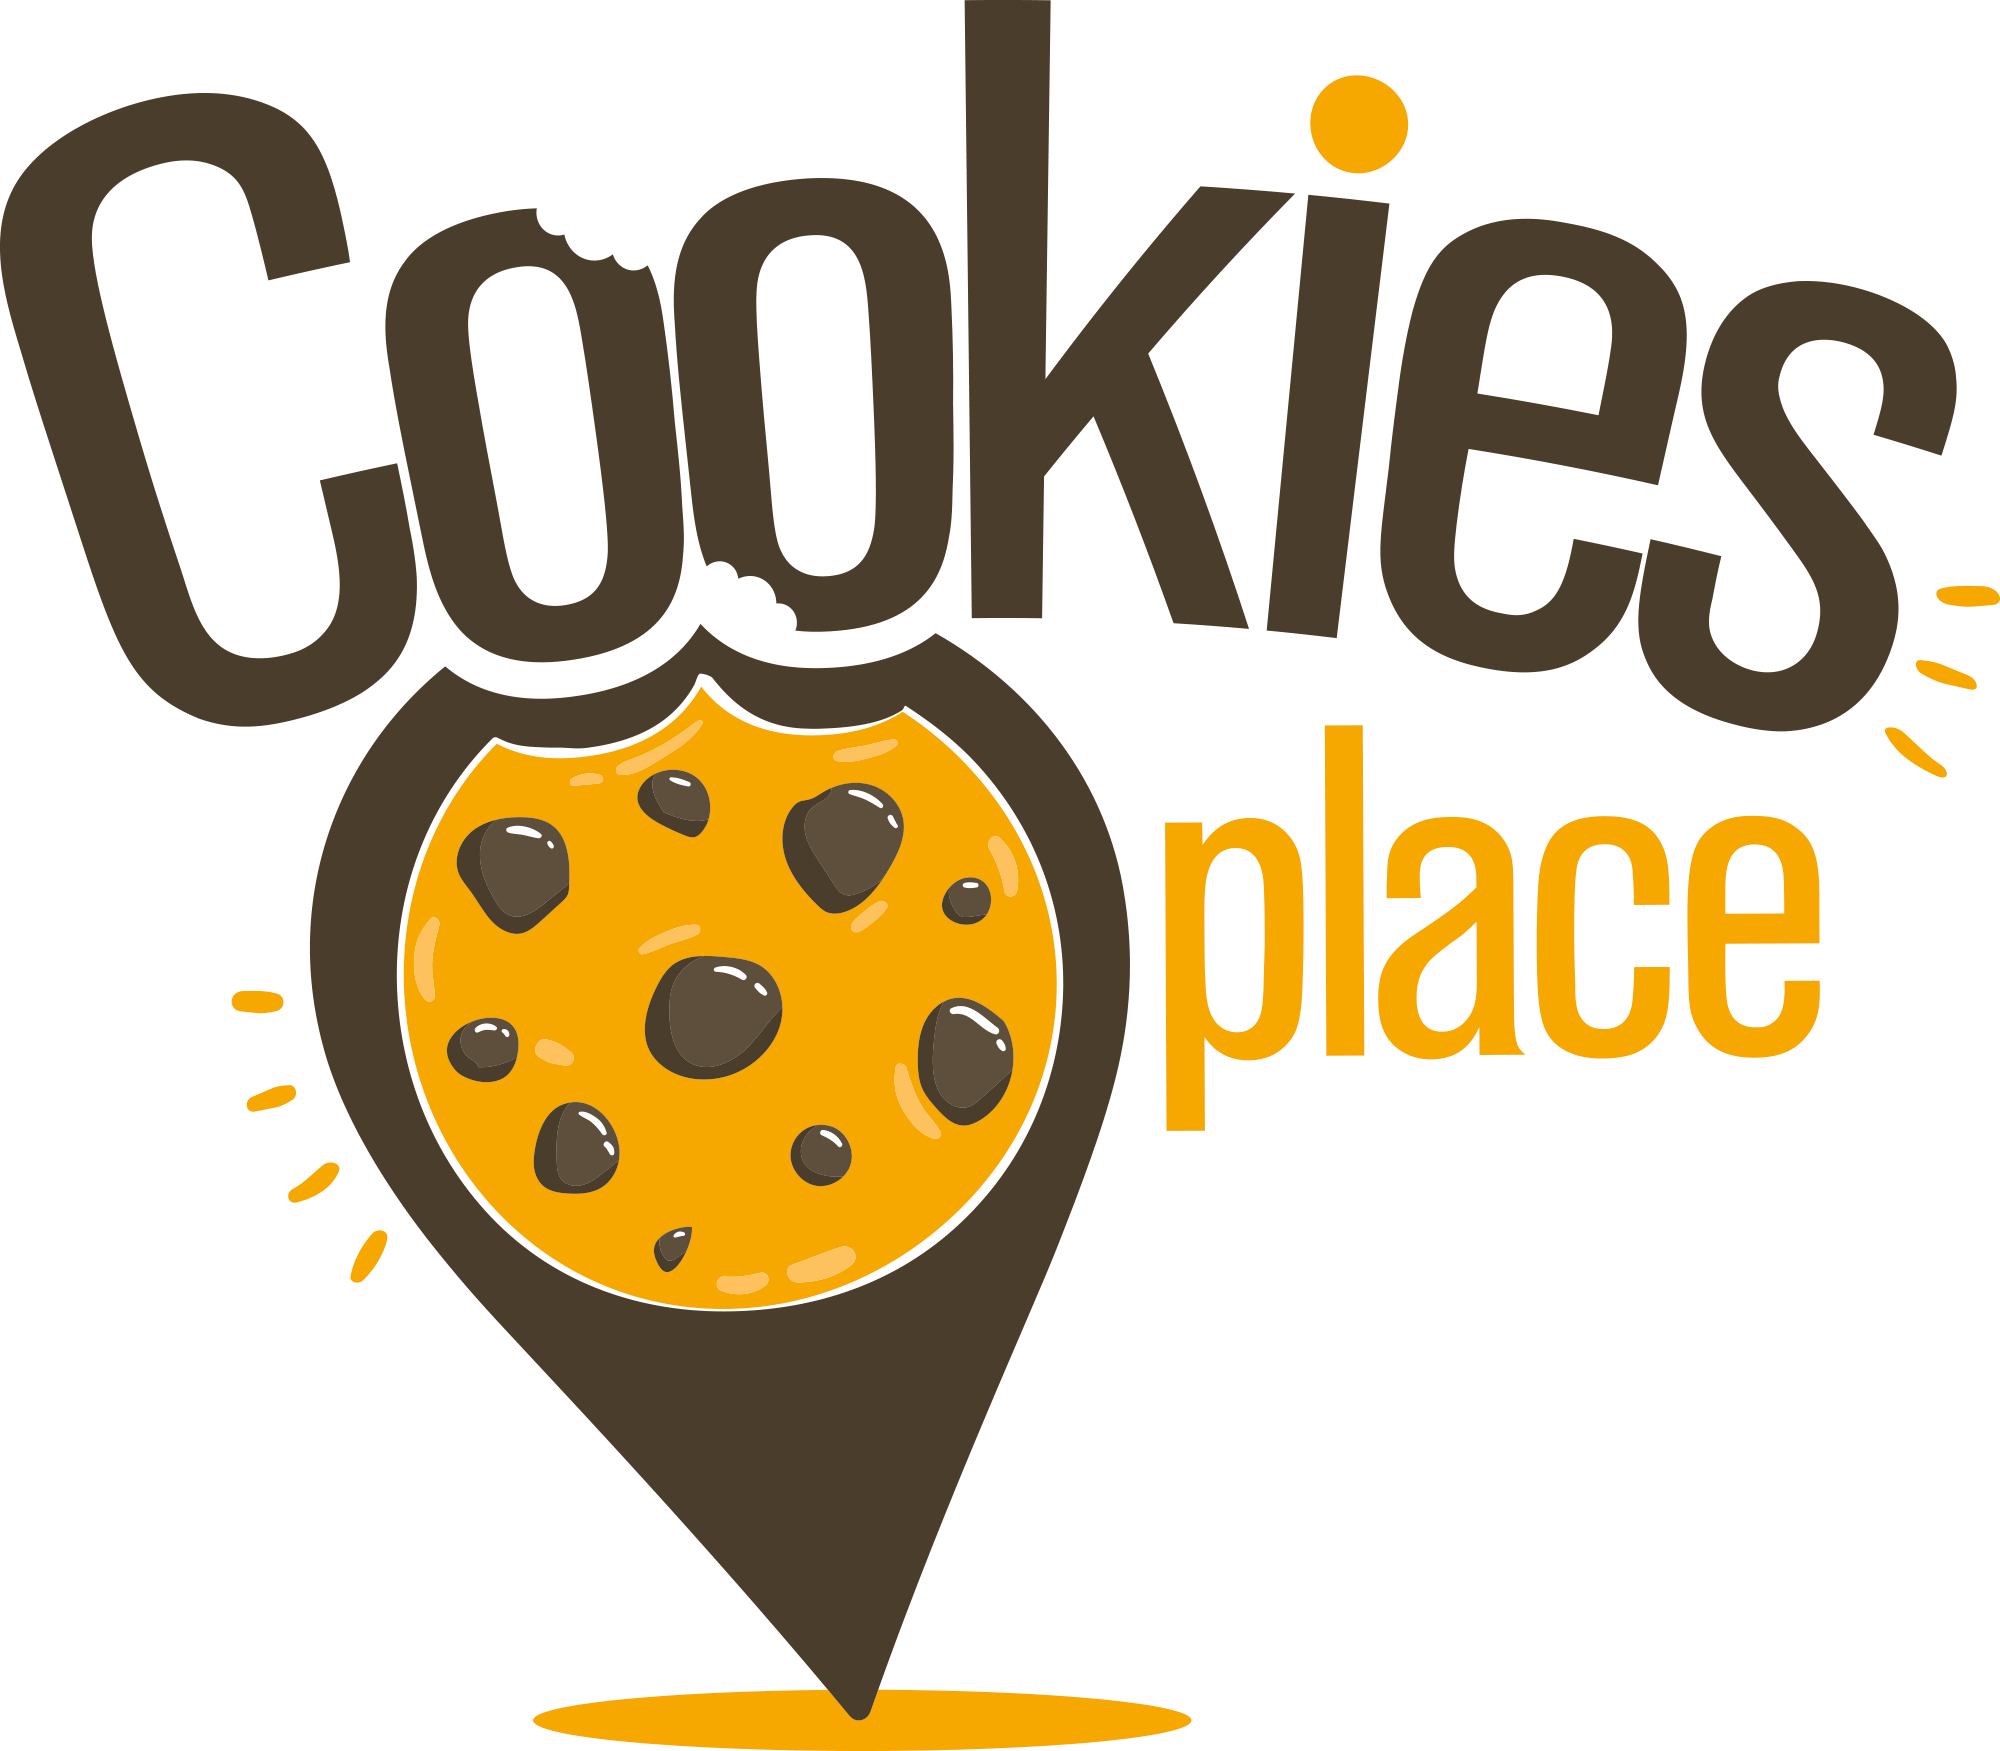 cookies-place-logo-ok-1